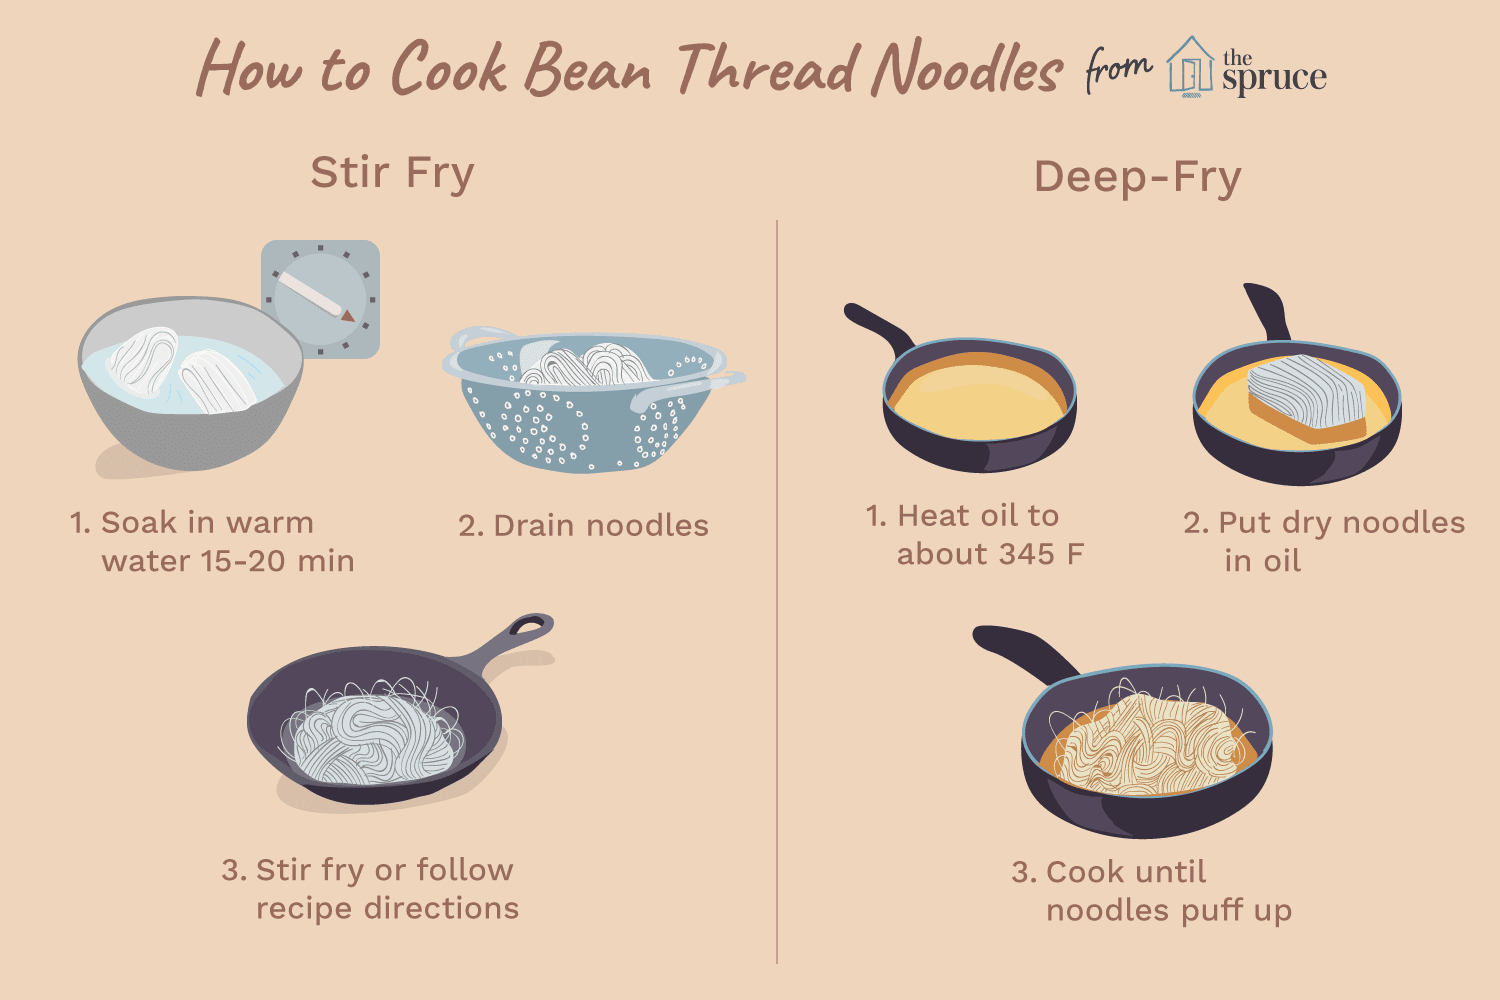 How To Cook Bean Thread Noodles